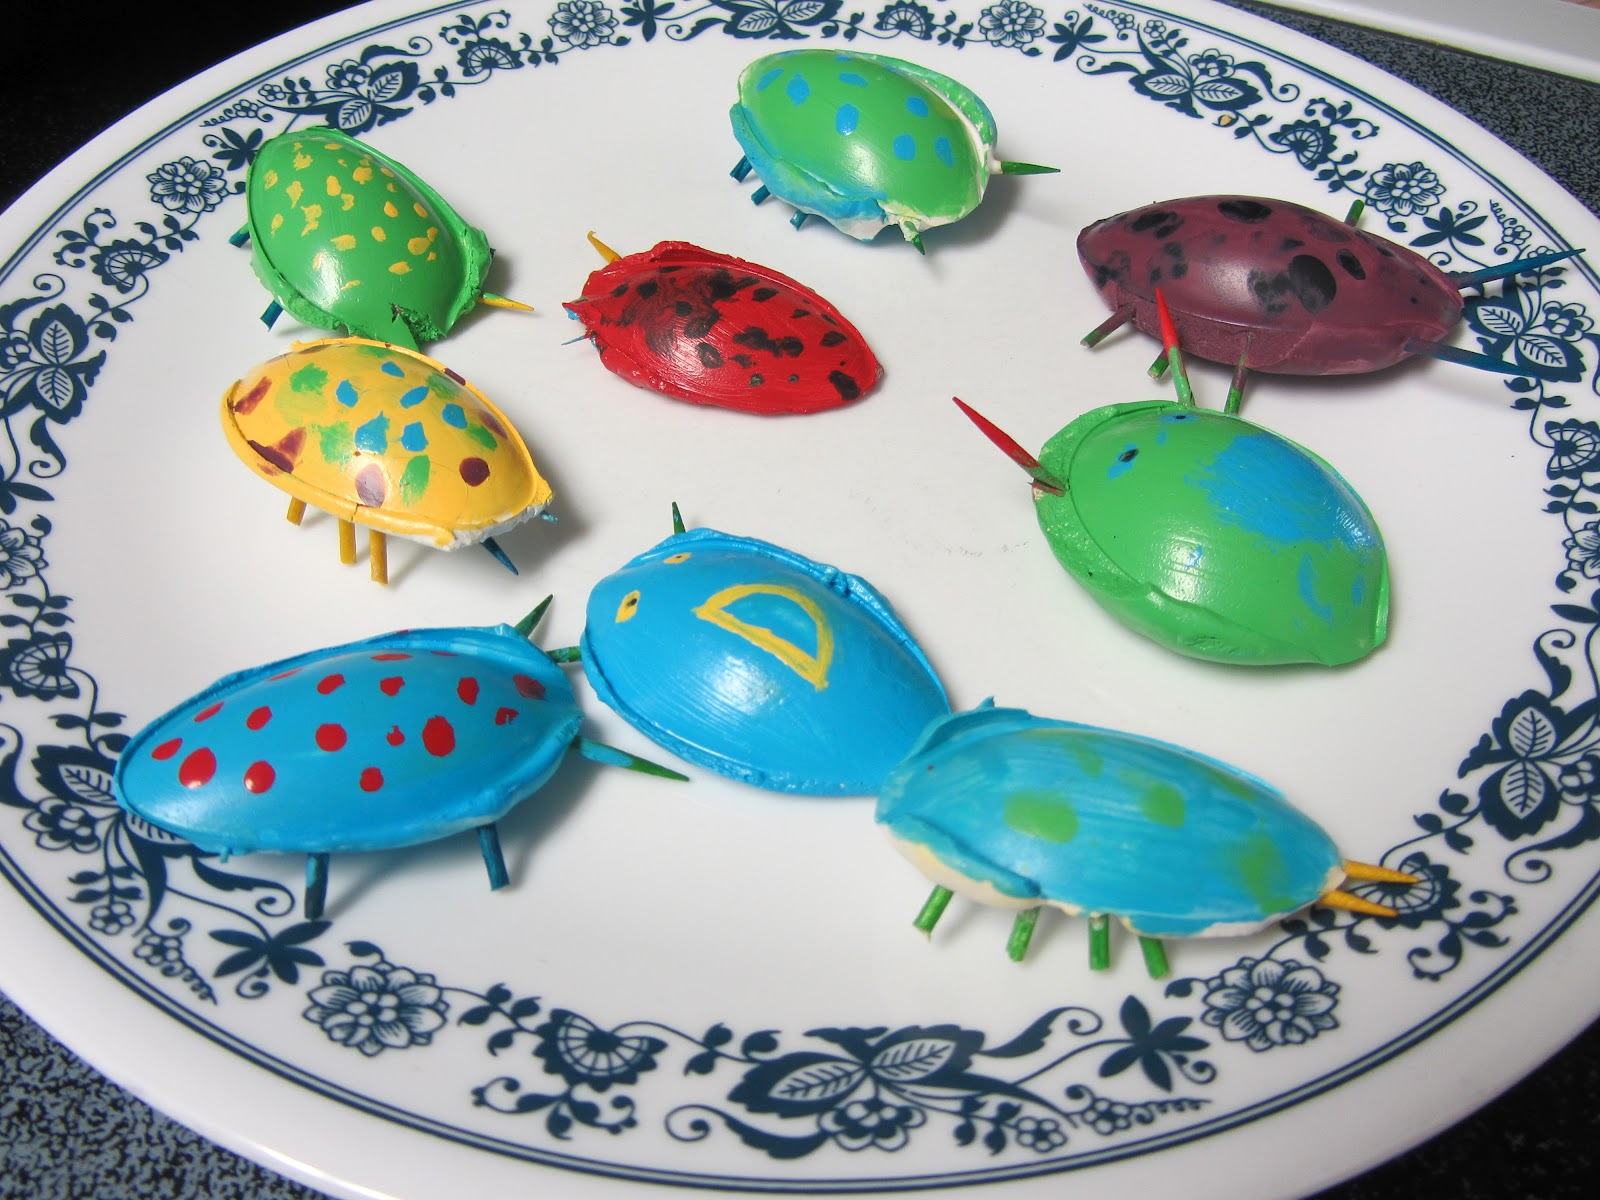 Mashed potatoes and crafts spoon bugs for kids for Paris themed crafts for kids